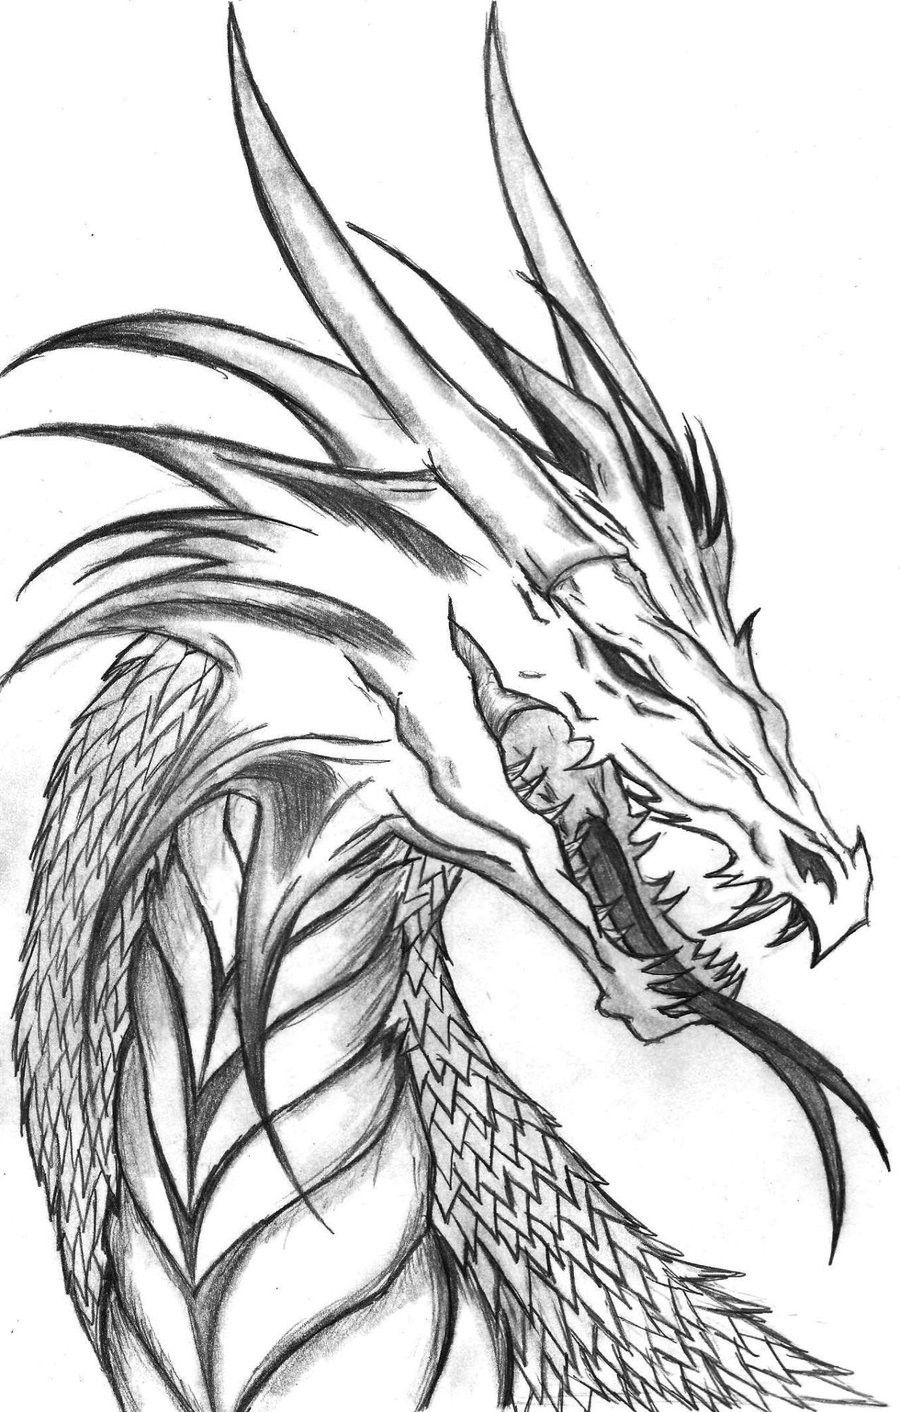 Ice Dragon Coloring Page in 2020 | Dragon coloring page ...